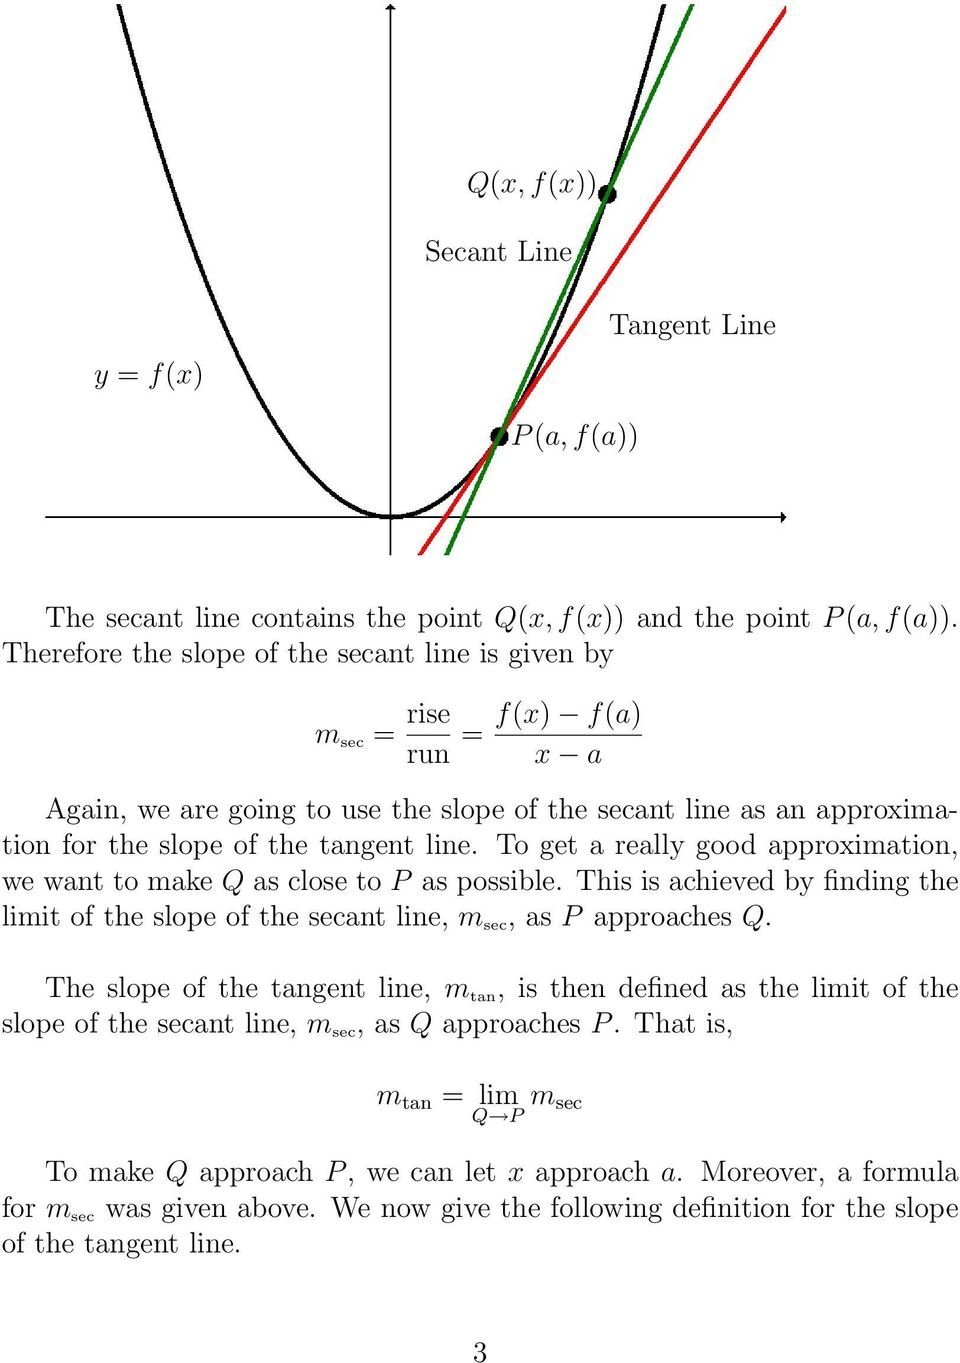 To get a really good approximation, we want to make Q as close to P as possible. Tis is acieved by finding te limit of te slope of te secant line, m sec, as P approaces Q.